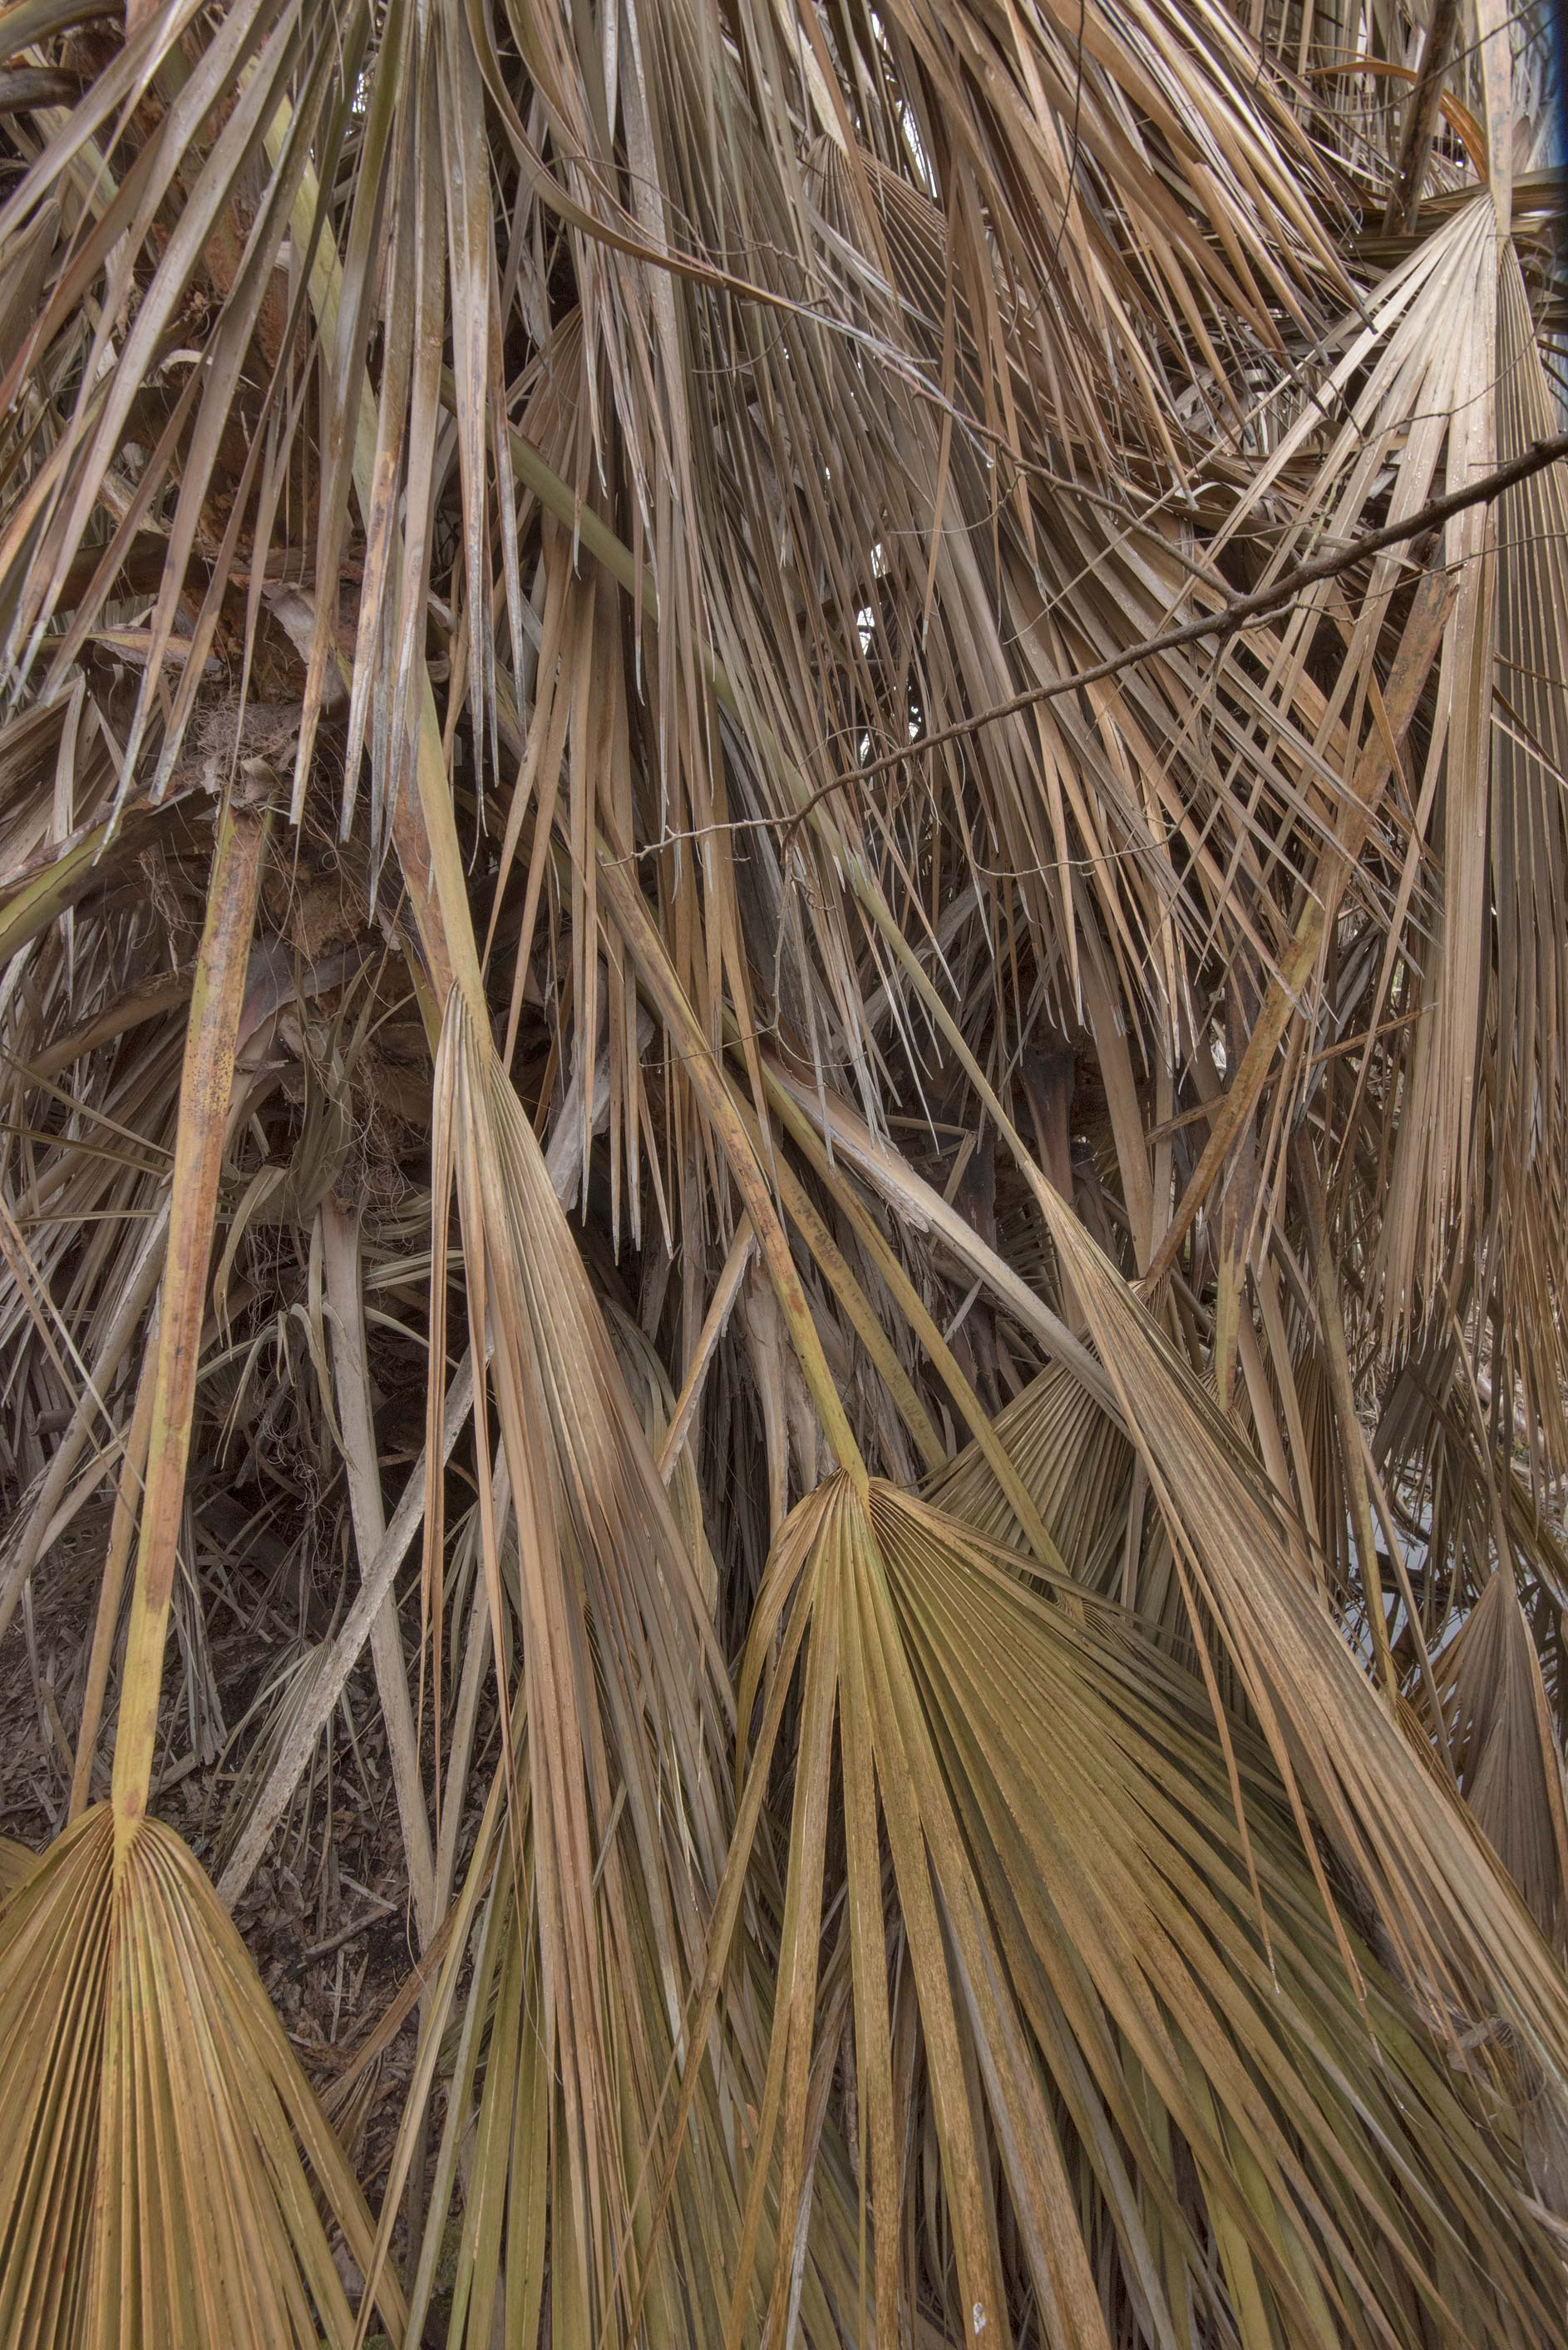 Palm leaves damaged by freeze in TAMU...M University. College Station, Texas